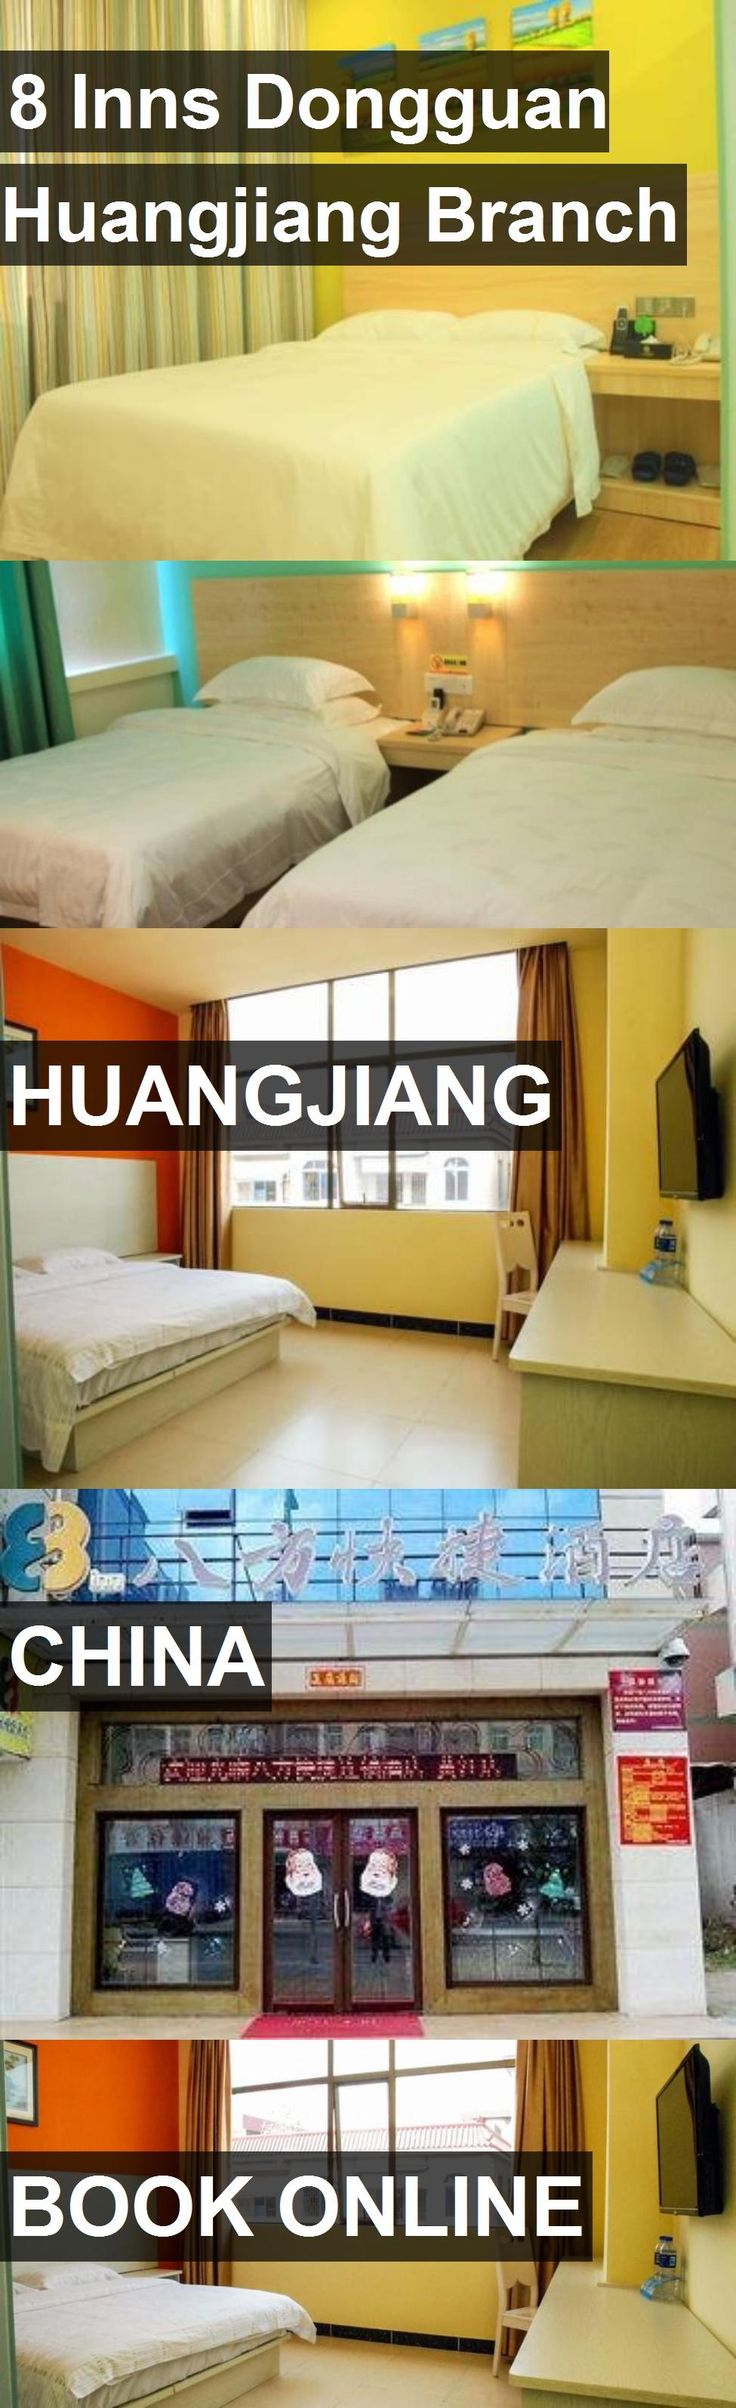 Hotel 8 Inns Dongguan Huangjiang Branch in Huangjiang, China. For more information, photos, reviews and best prices please follow the link. #China #Huangjiang #8InnsDongguanHuangjiangBranch #hotel #travel #vacation